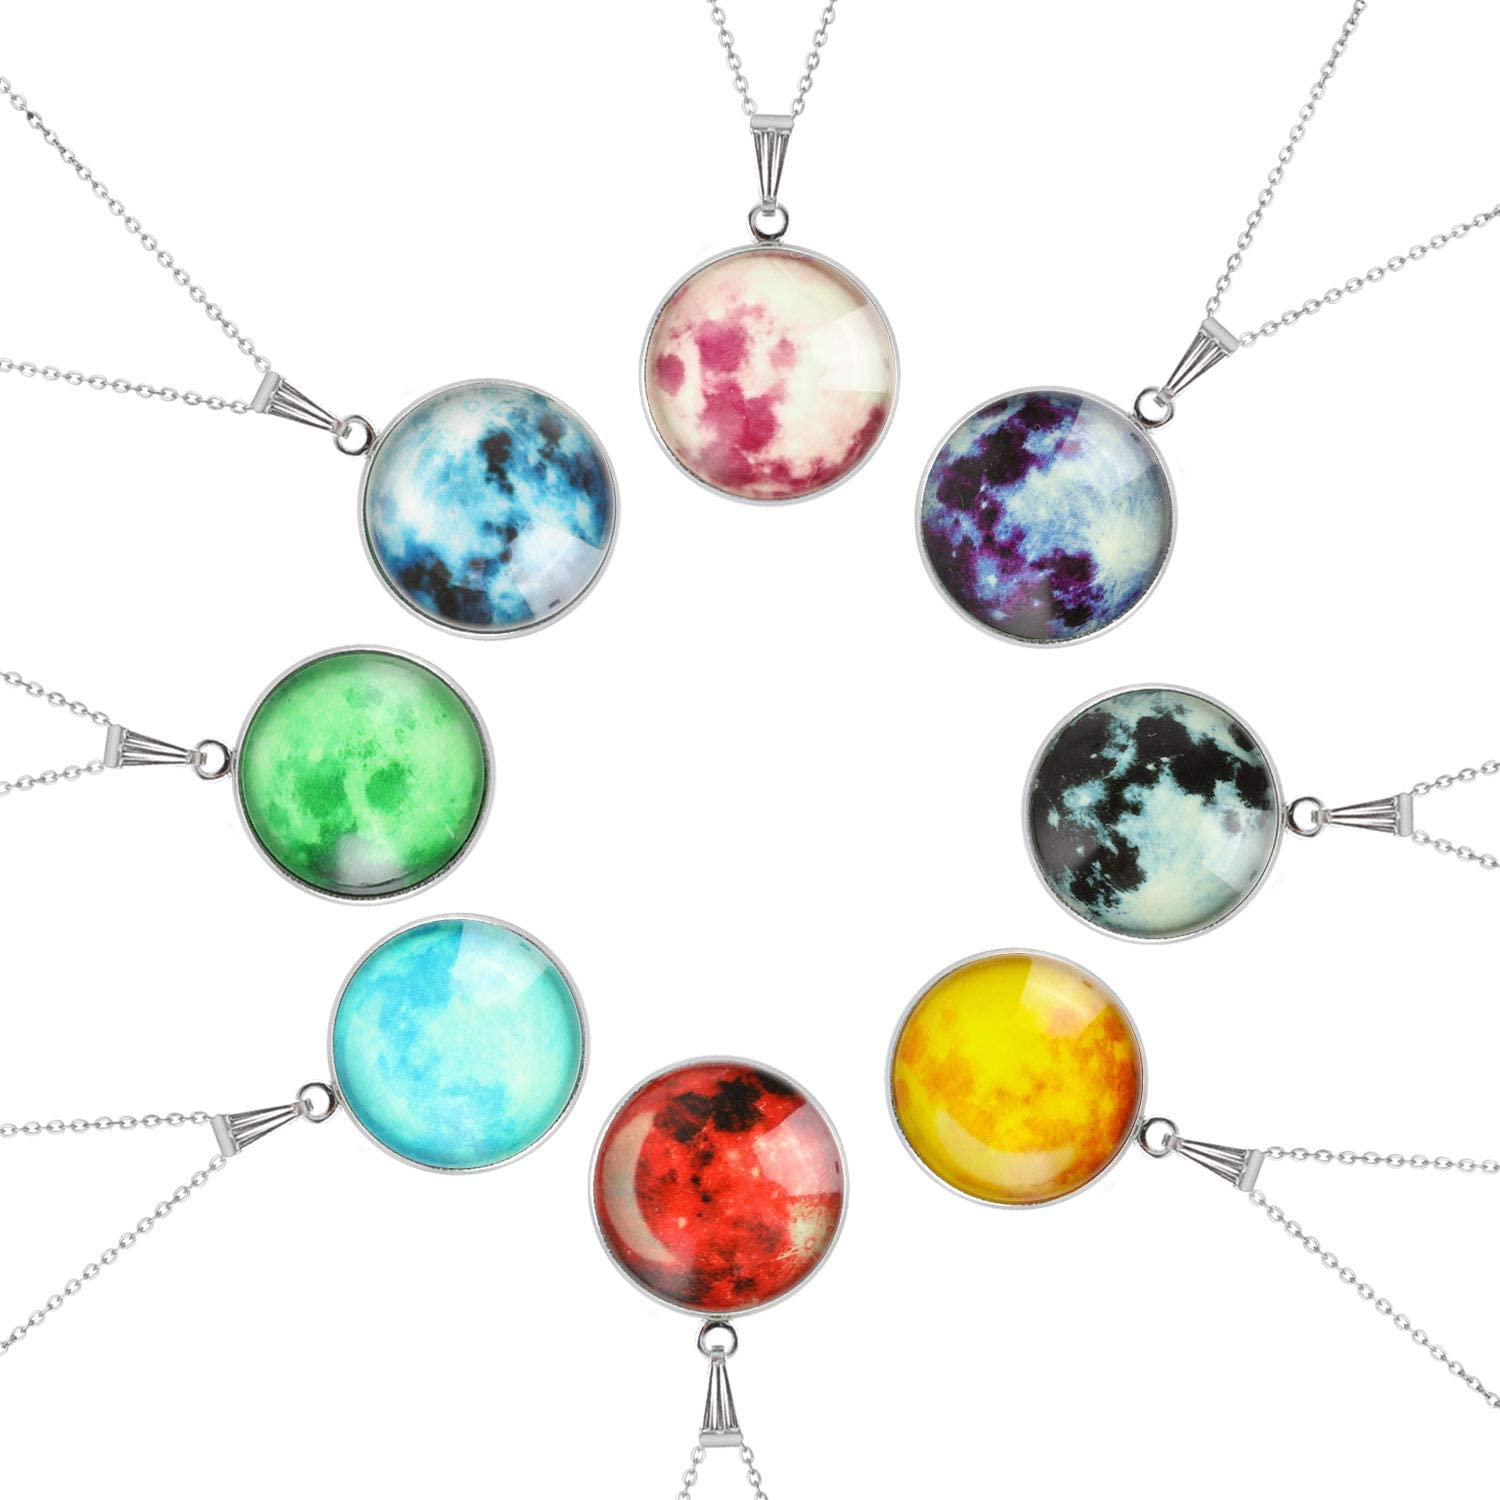 Party Favors Supplies Goody Bag Fillers Glowing Necklace for Kids 8pcs HIFOT Moon Pendant Necklace Girl Boy Galaxy Necklace